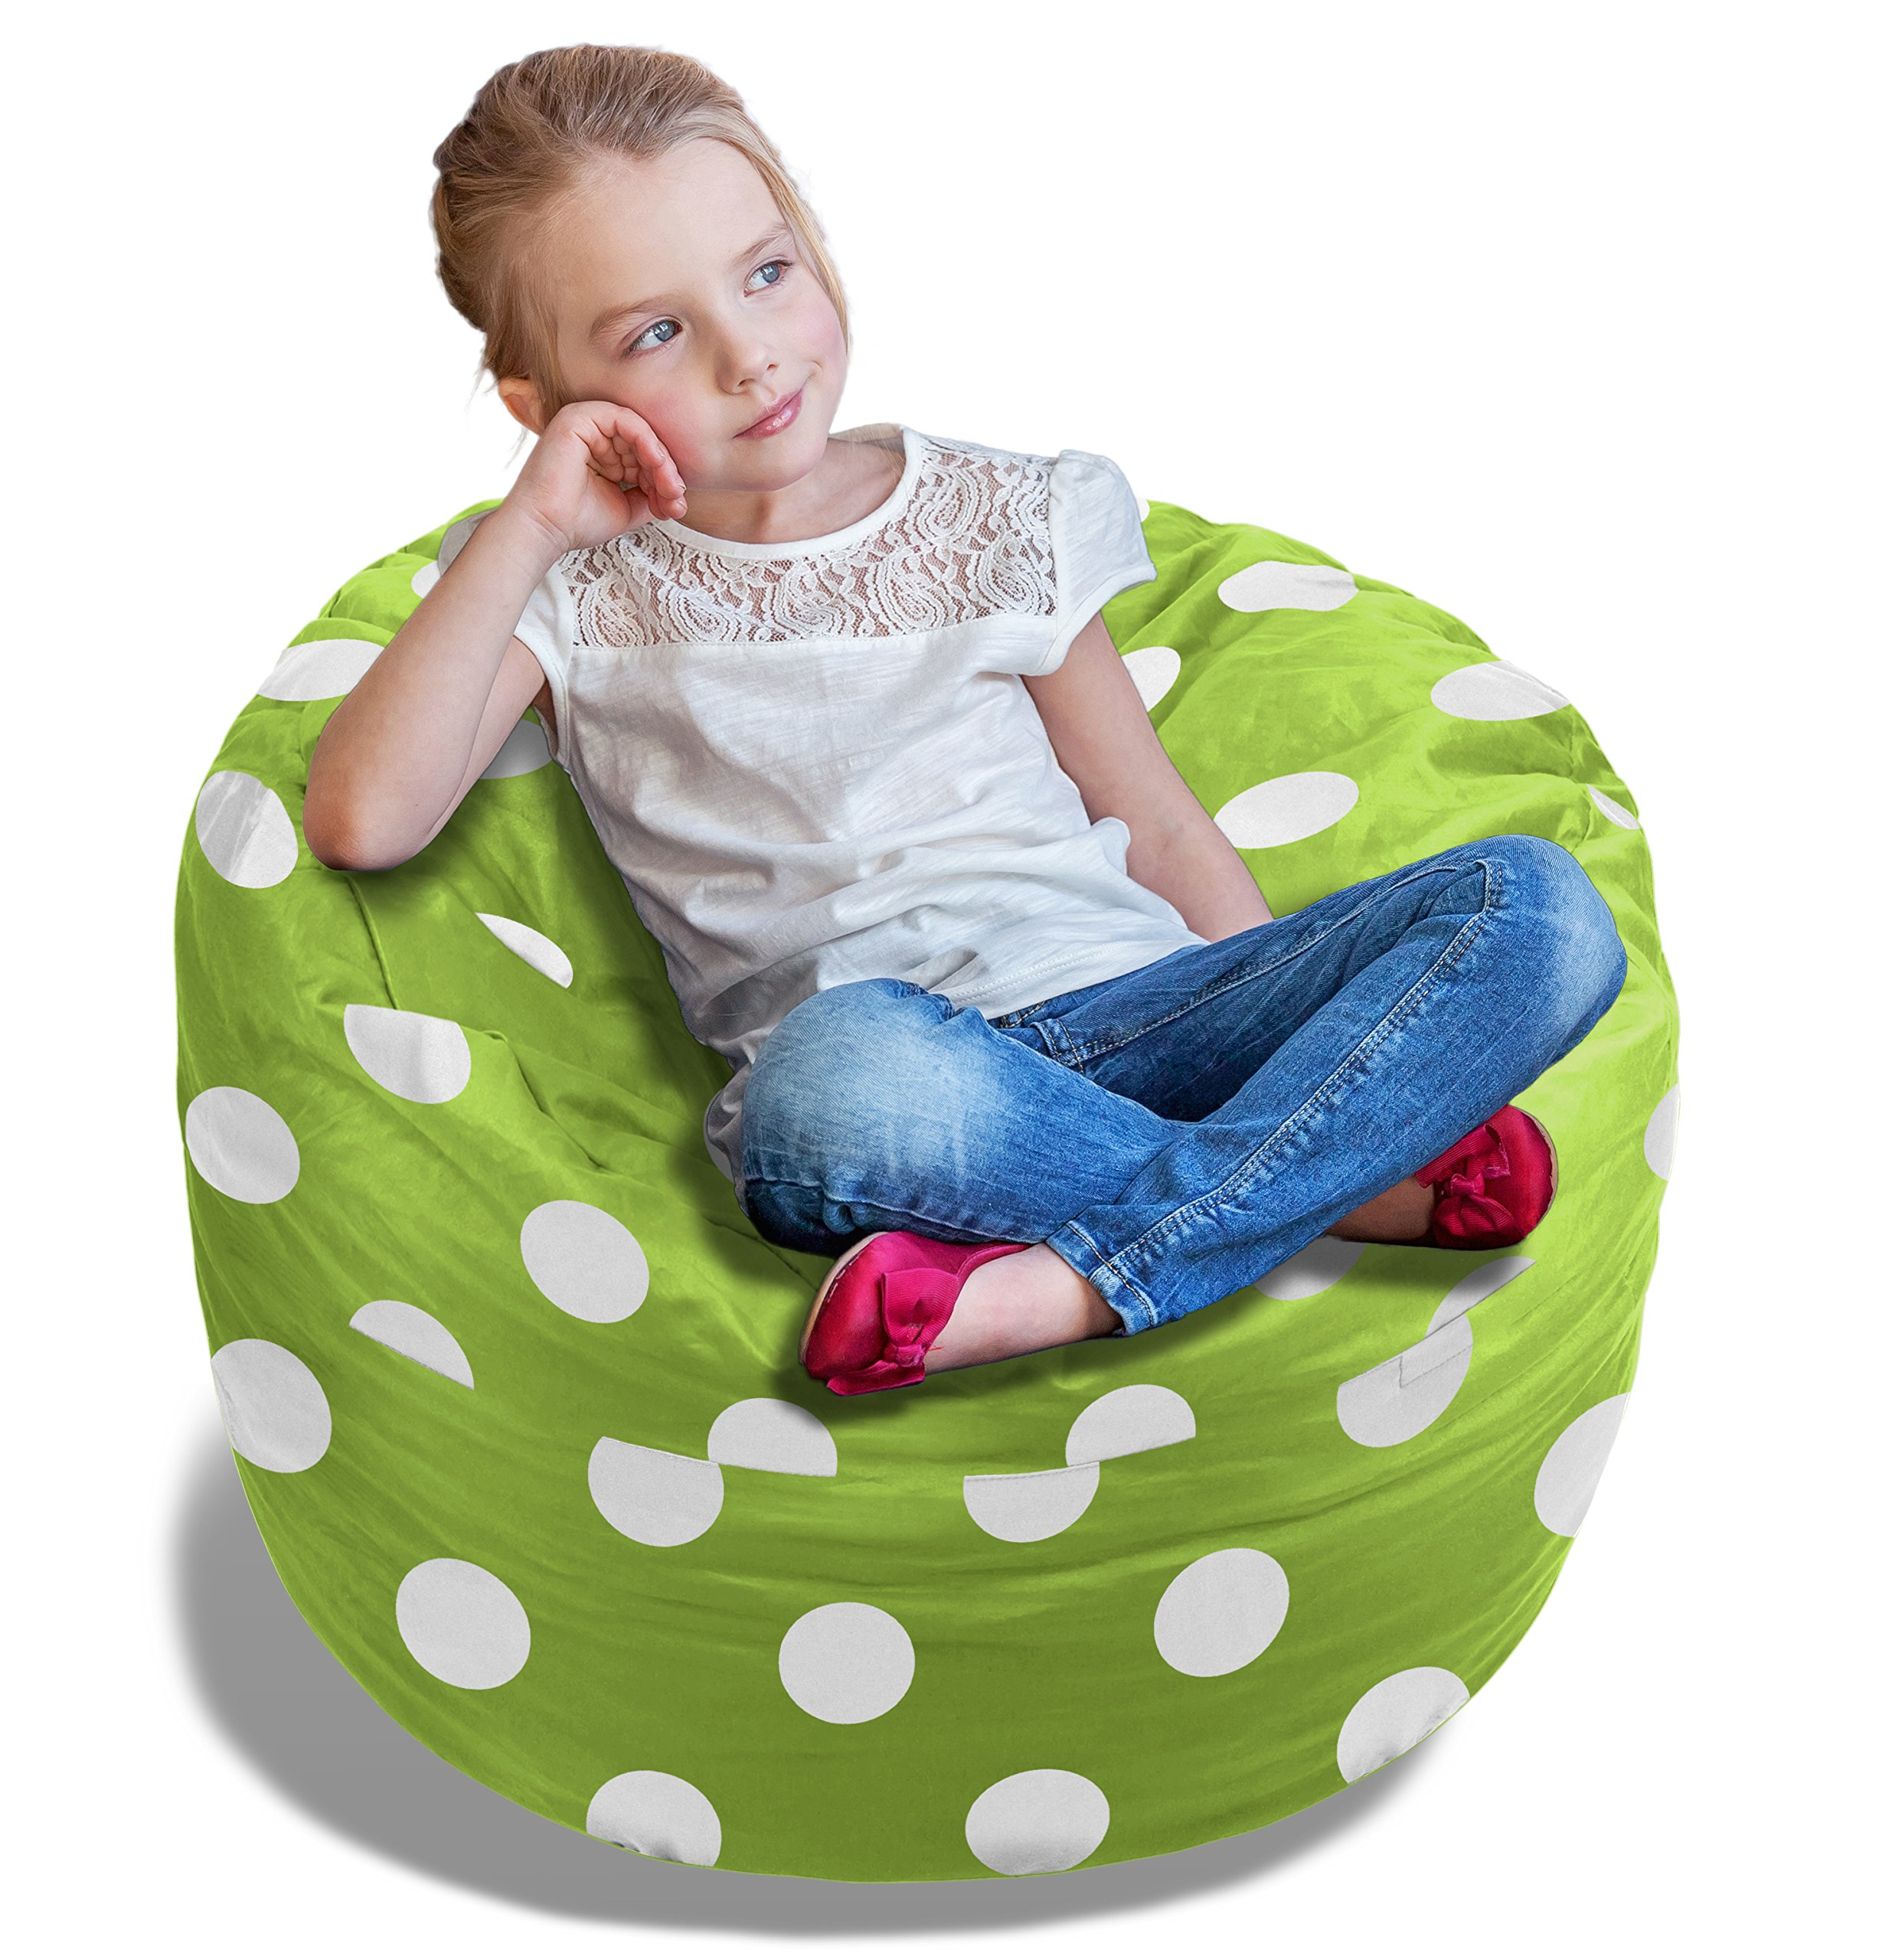 Stuffed Animal Bean Bag Storage Chair in Green w/Polka Dots - 2.5ft Large Fill & Chill Space Saving Toy Organizer for Children - for Blankets, Teddy Bears, Clothes & Bedding